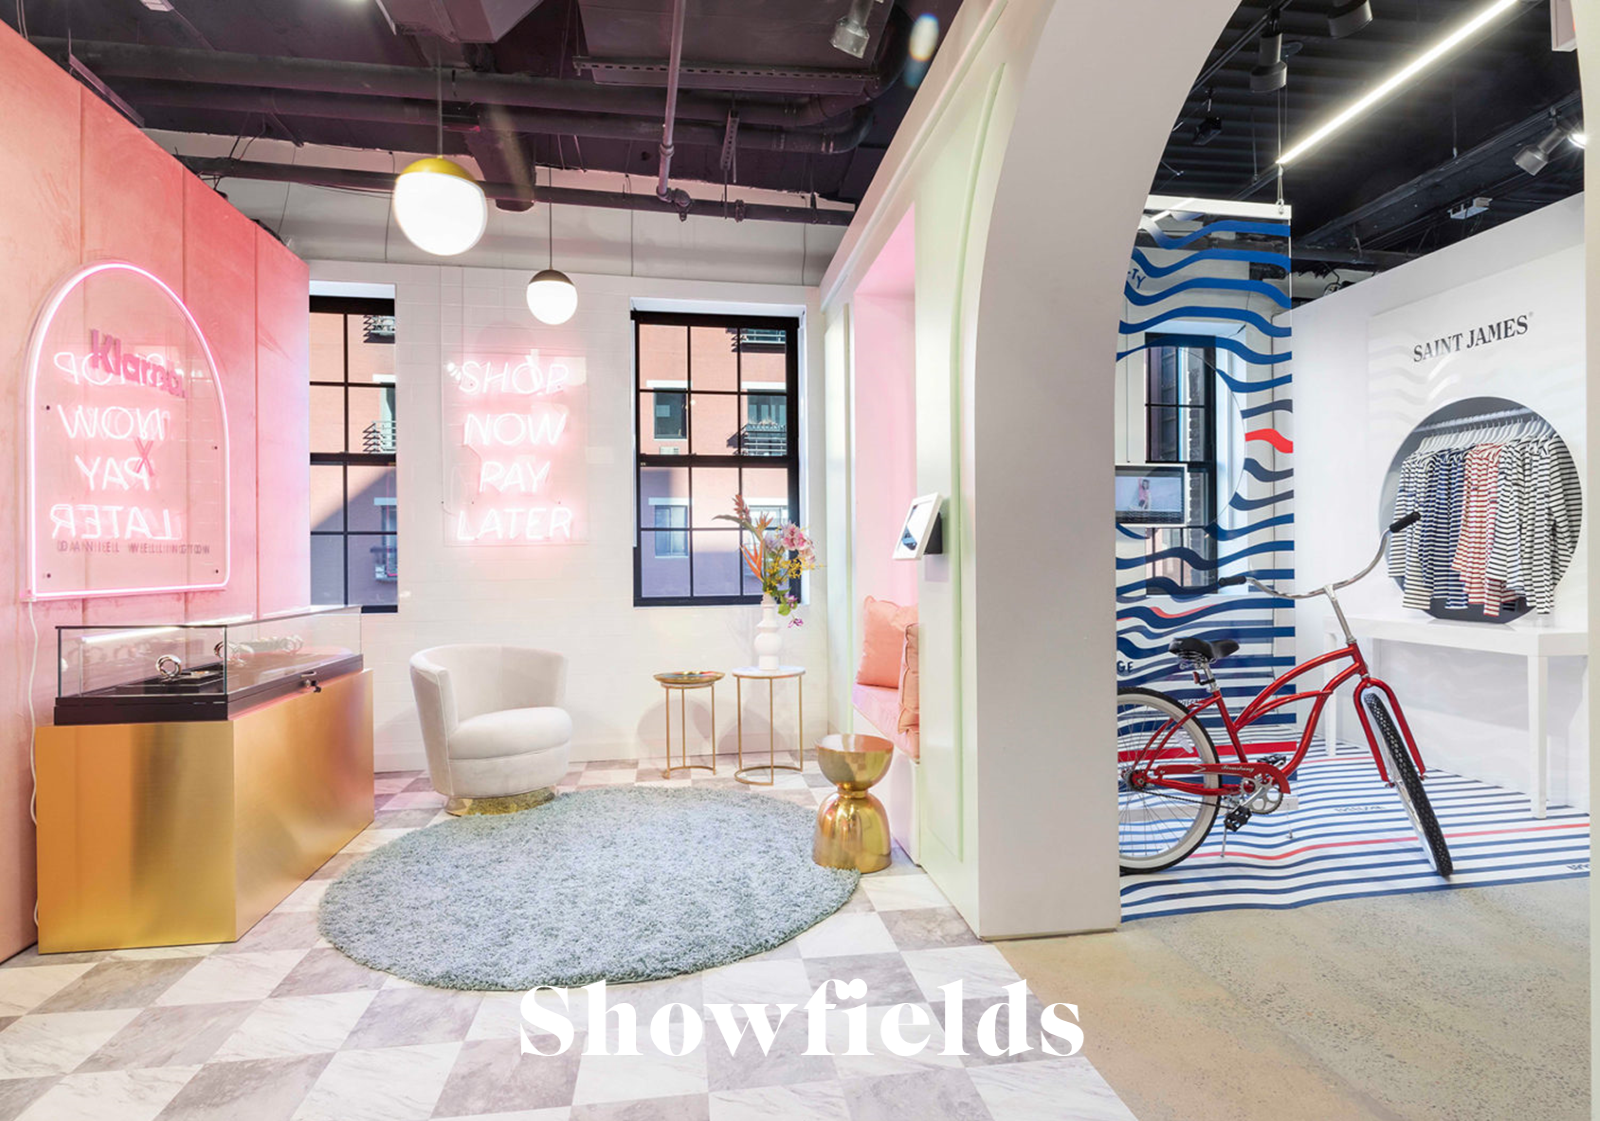 showfields-pop-up-stores-dnvb